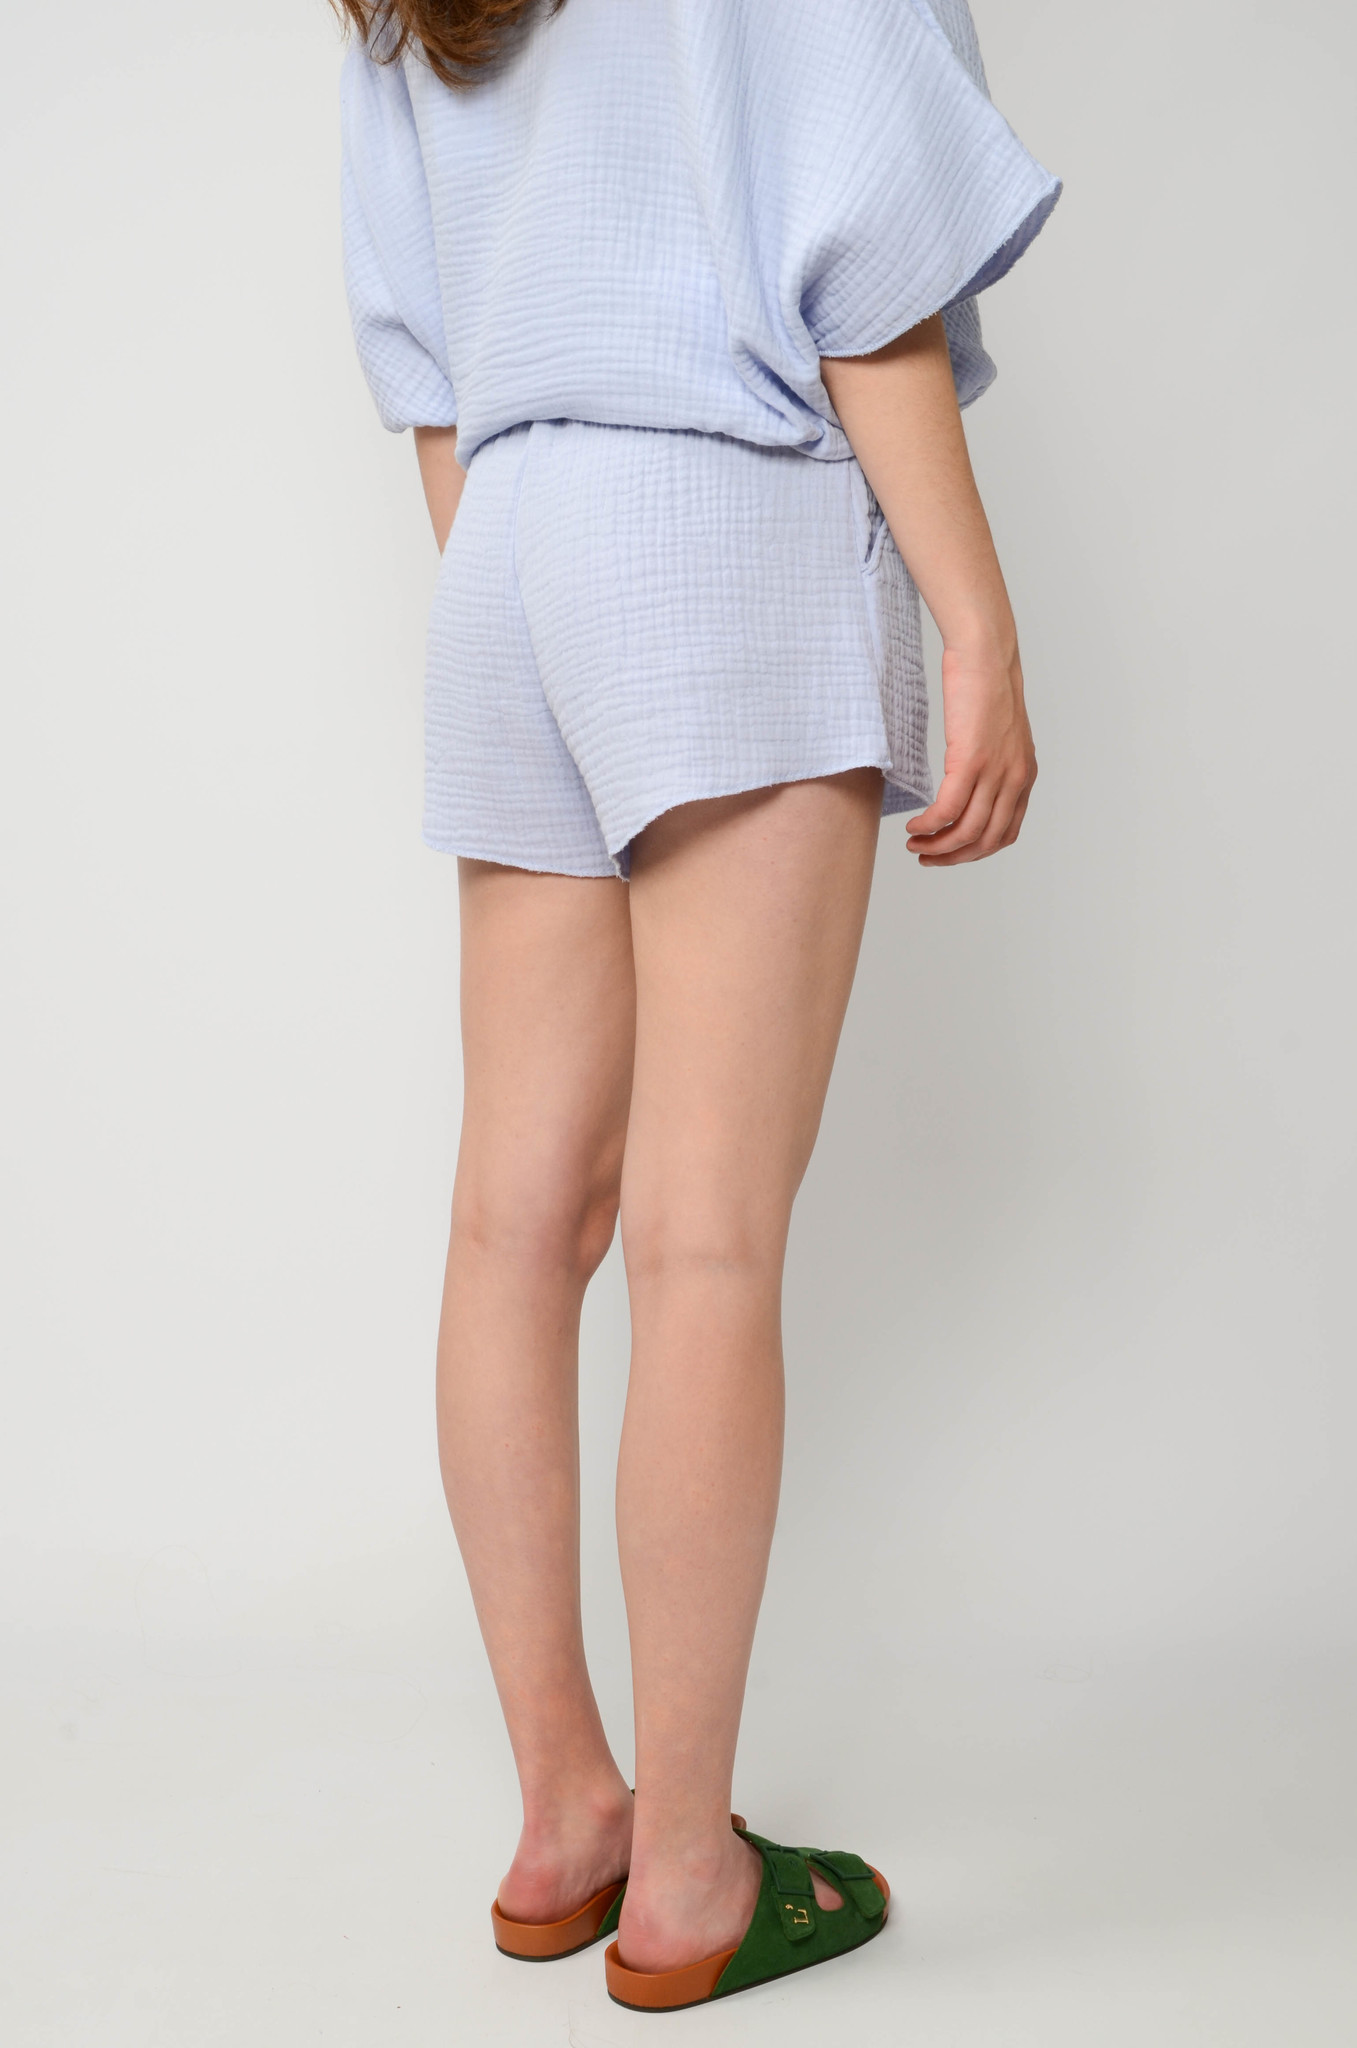 DATAI SHORTS IN ICE BLUE-4